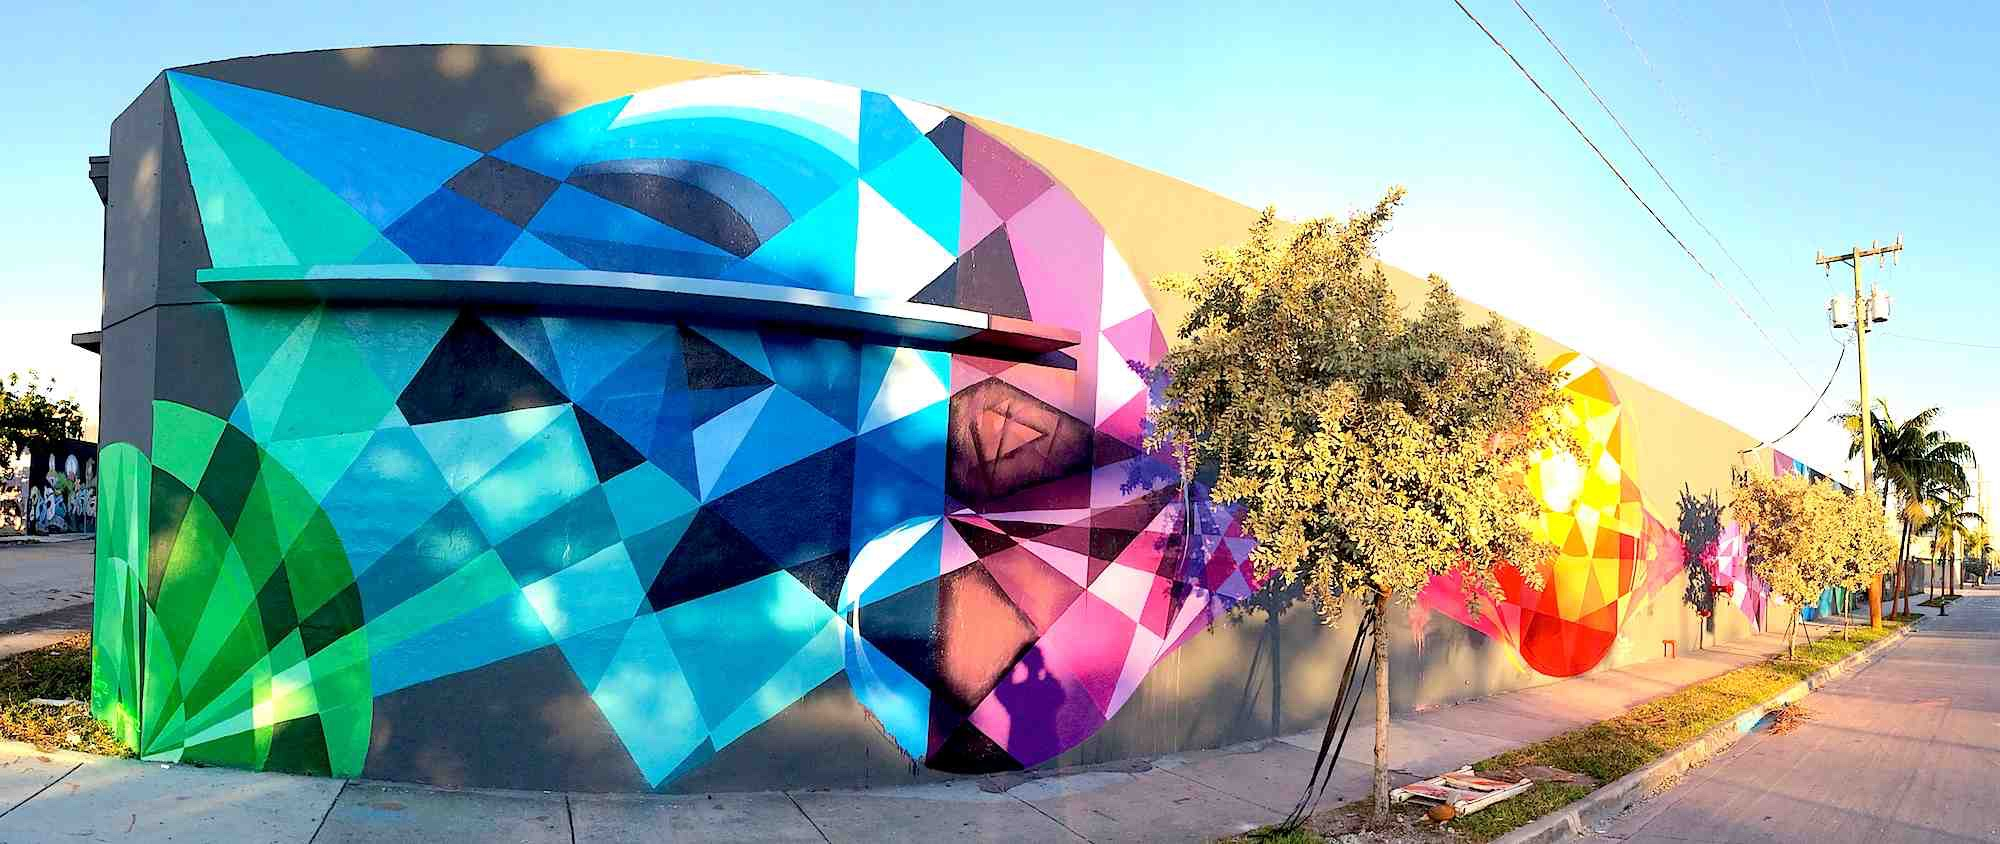 Hire Graffiti Artist San Francisco | Rye QUARTZ 1